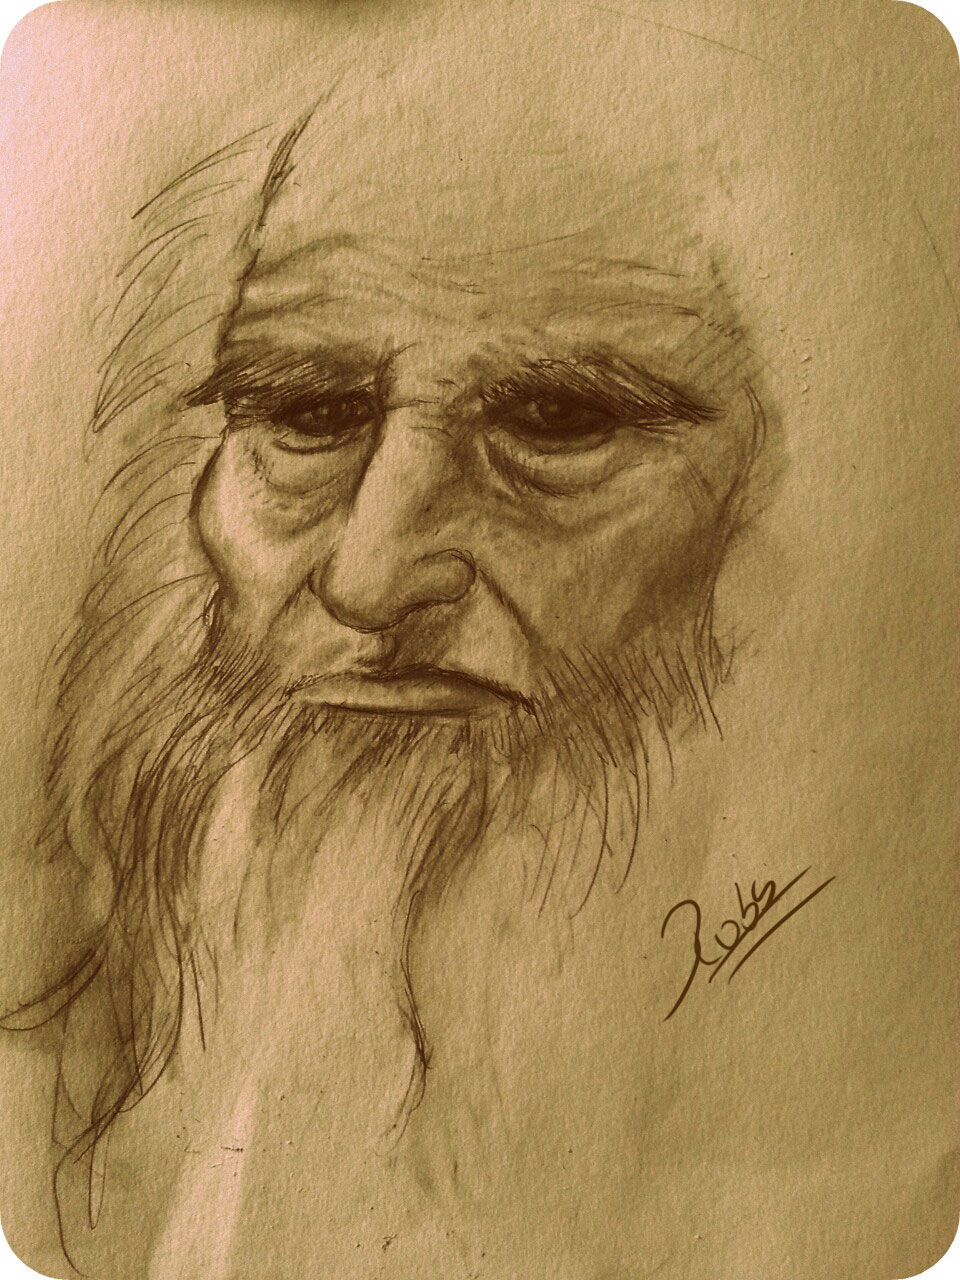 leonardo da vinci sketch by hatpup on leonardo da vinci sketch by hatpup leonardo da vinci sketch by hatpup